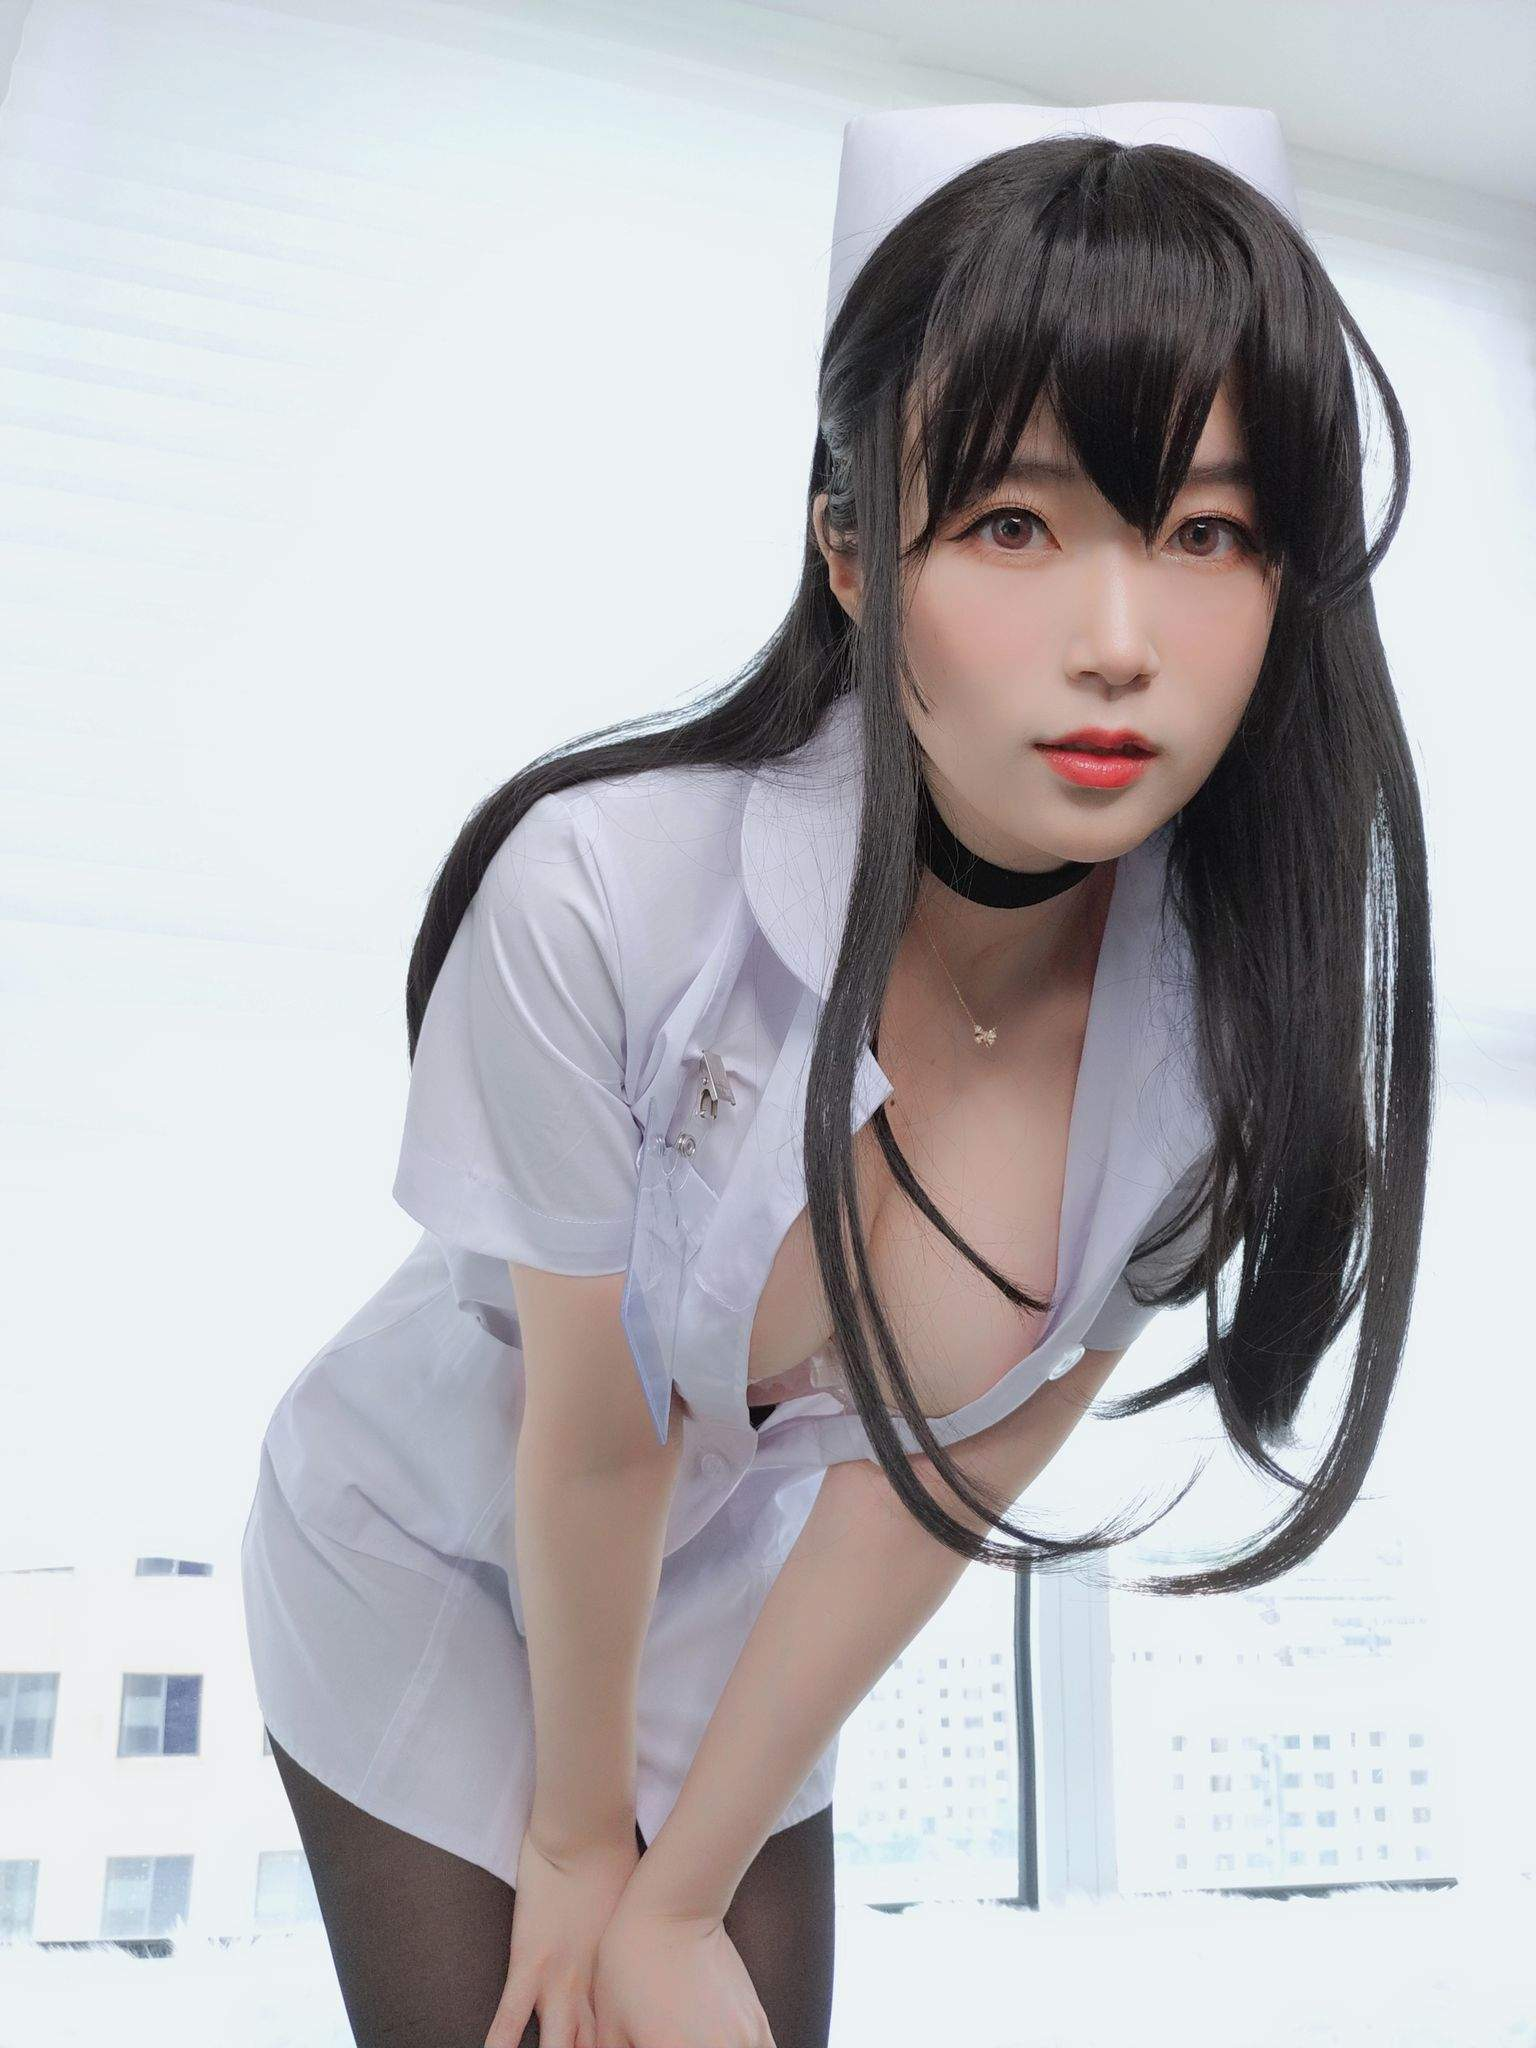 Nurse with long hair027